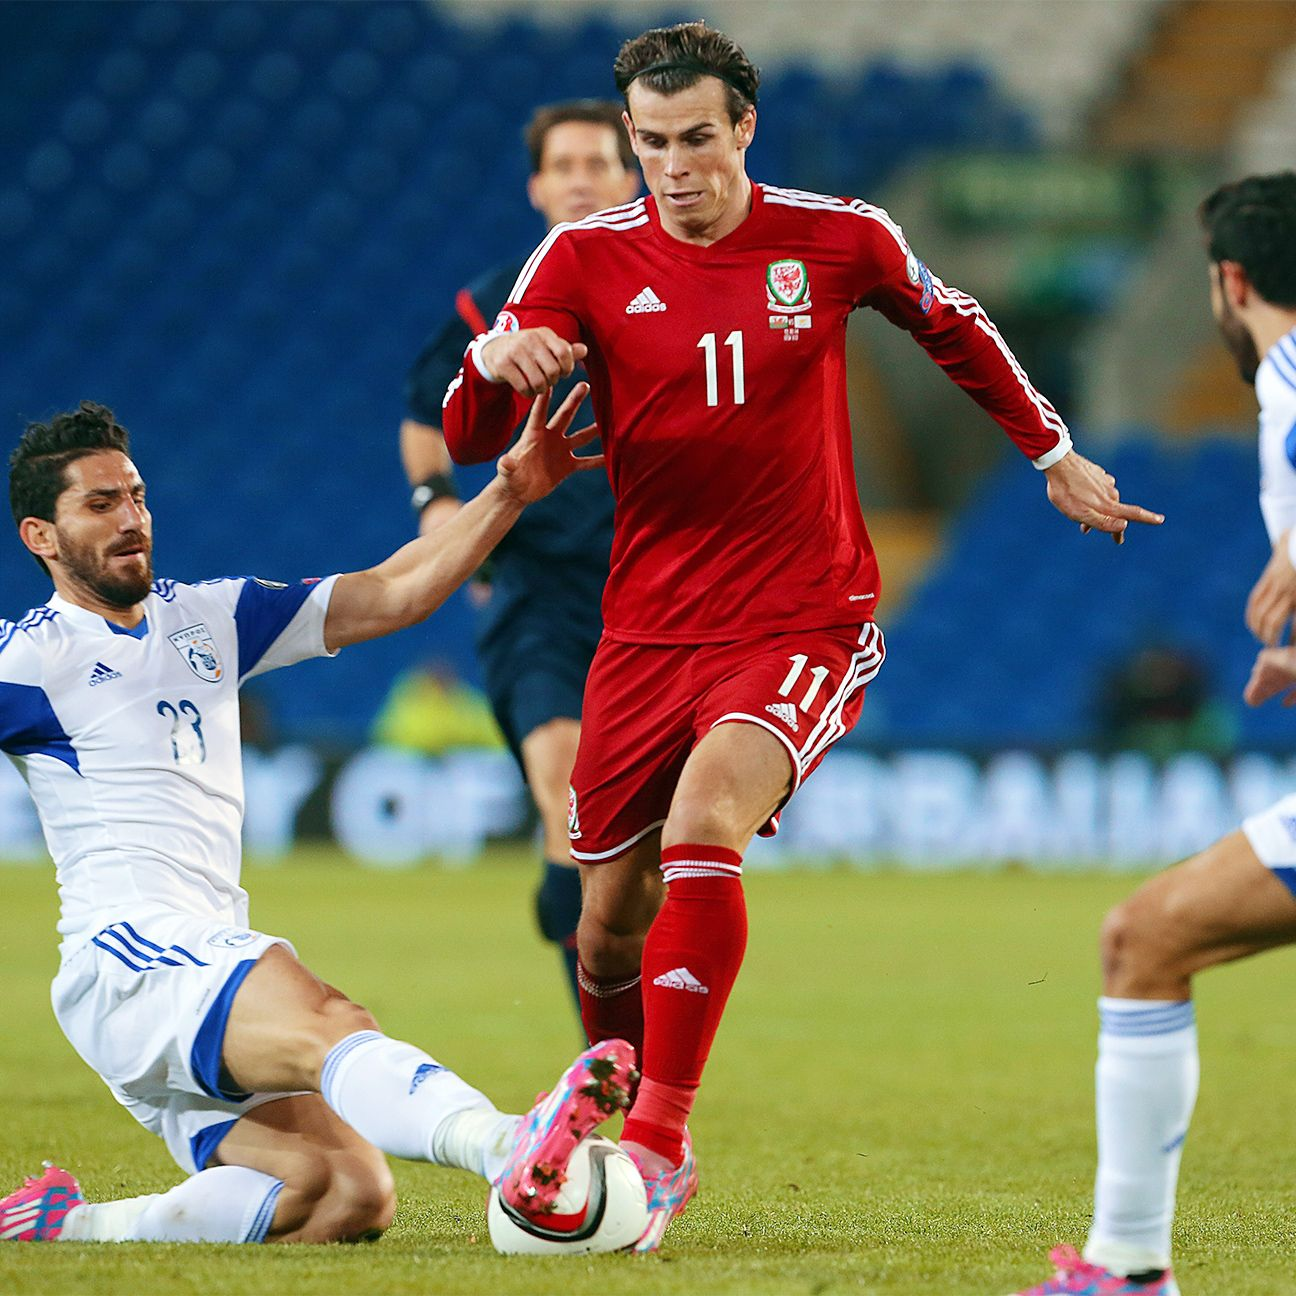 Gareth Bale continued his fine form in helping Wales to three points versus Cyprus.